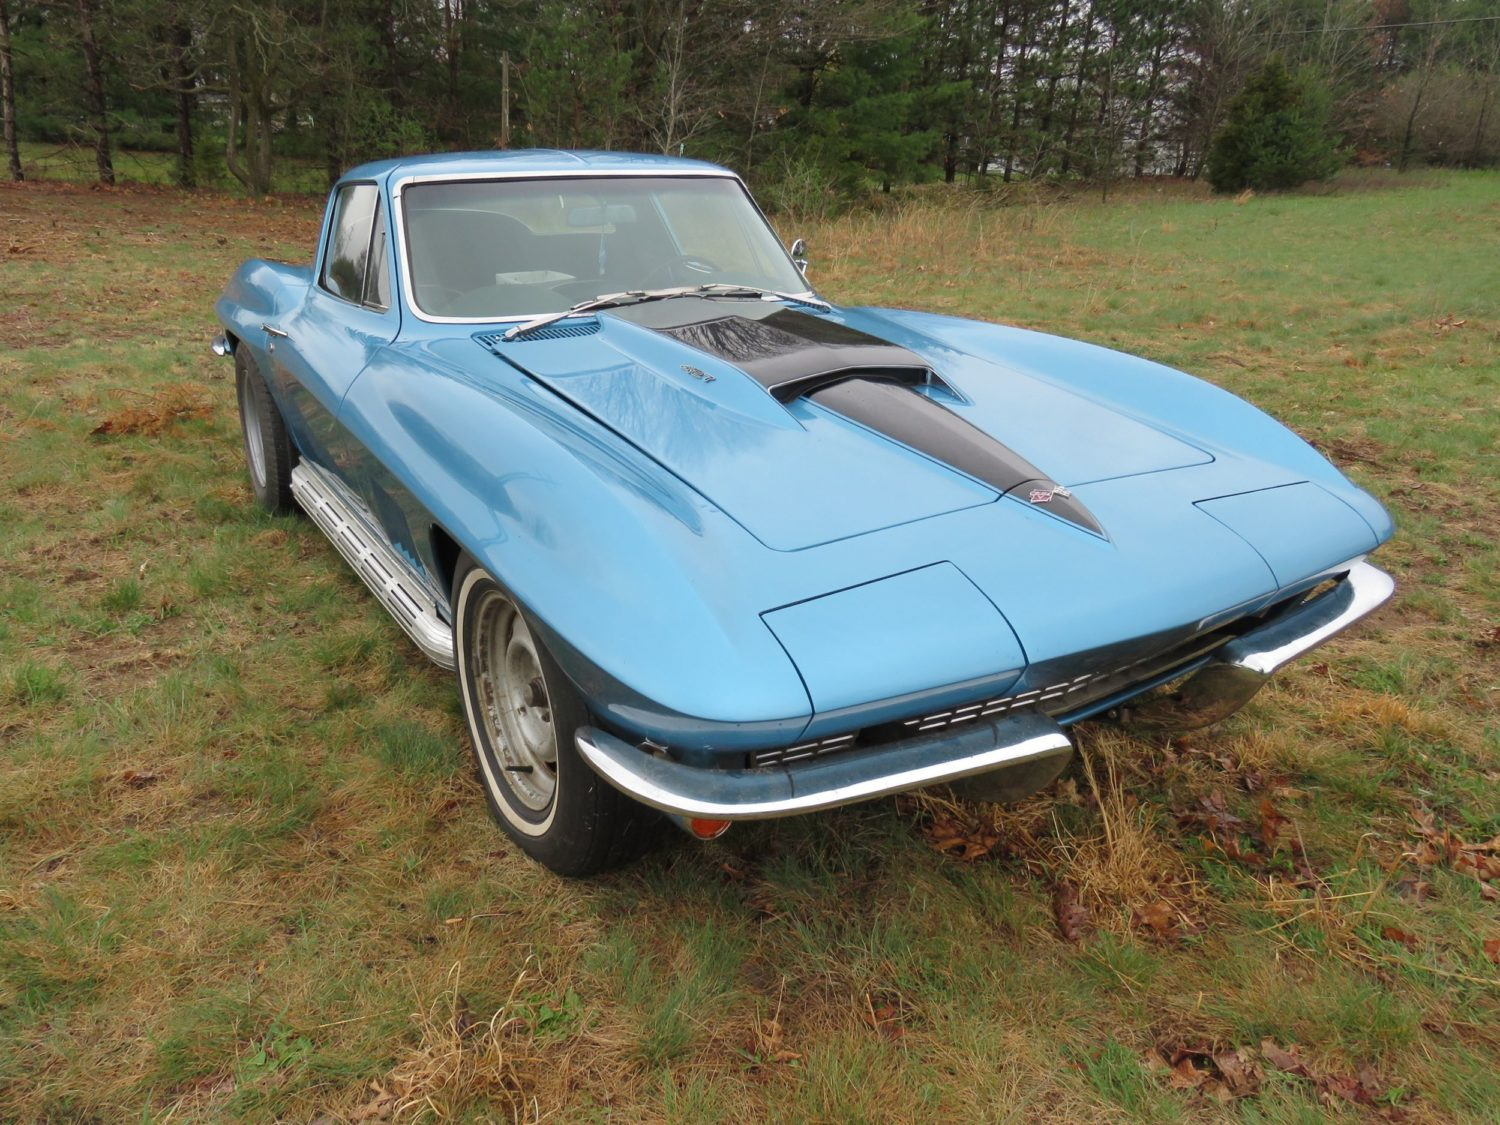 The Michigan Muscle Car & Parts Collection –Tom Brown Collection - image 6